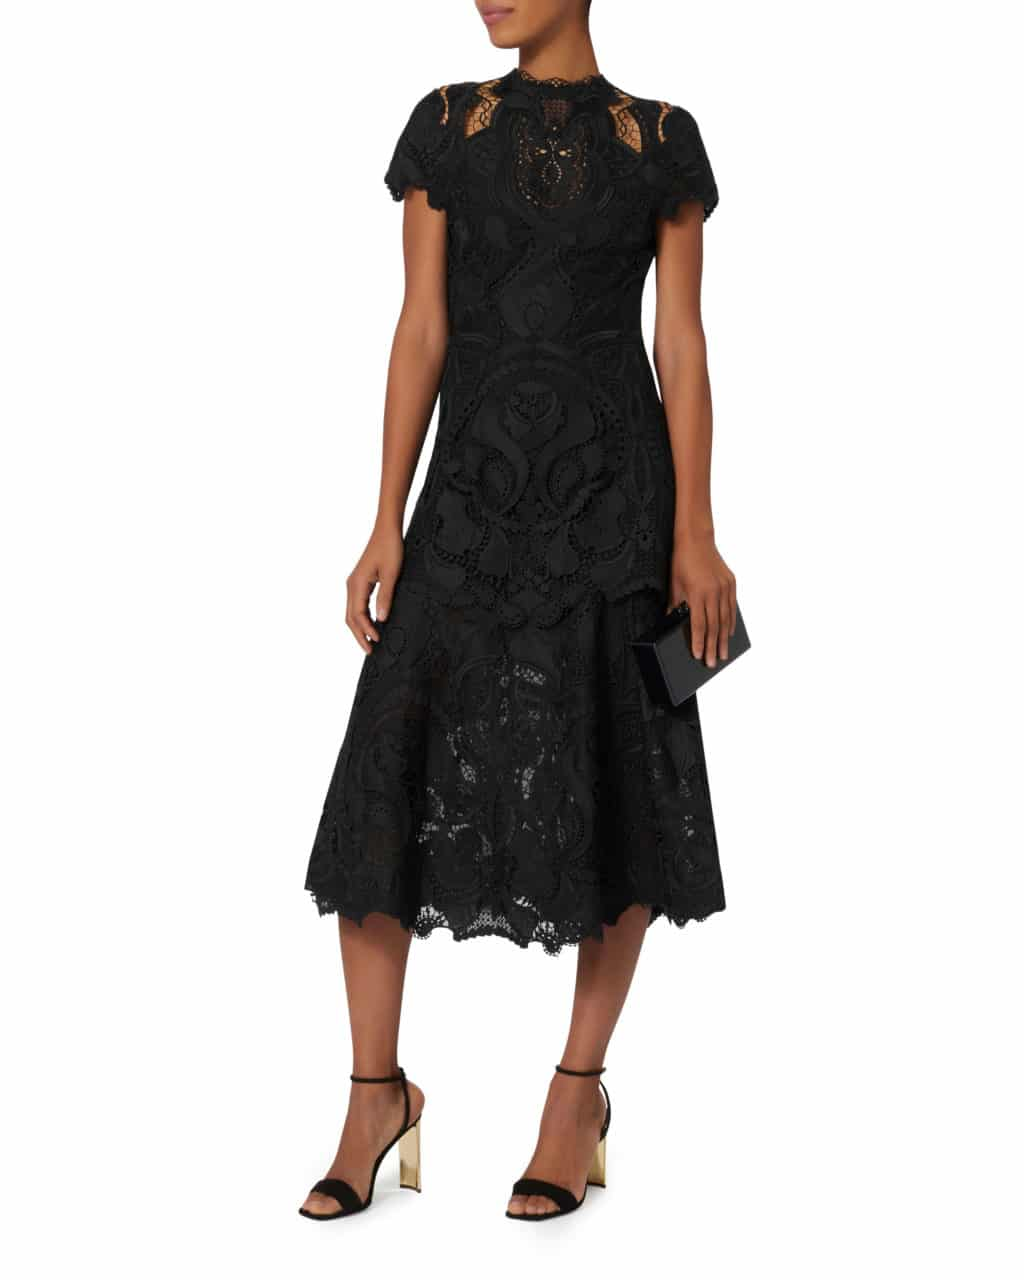 JONATHAN SIMKHAI Crepe Appliqué Midi Black Dress